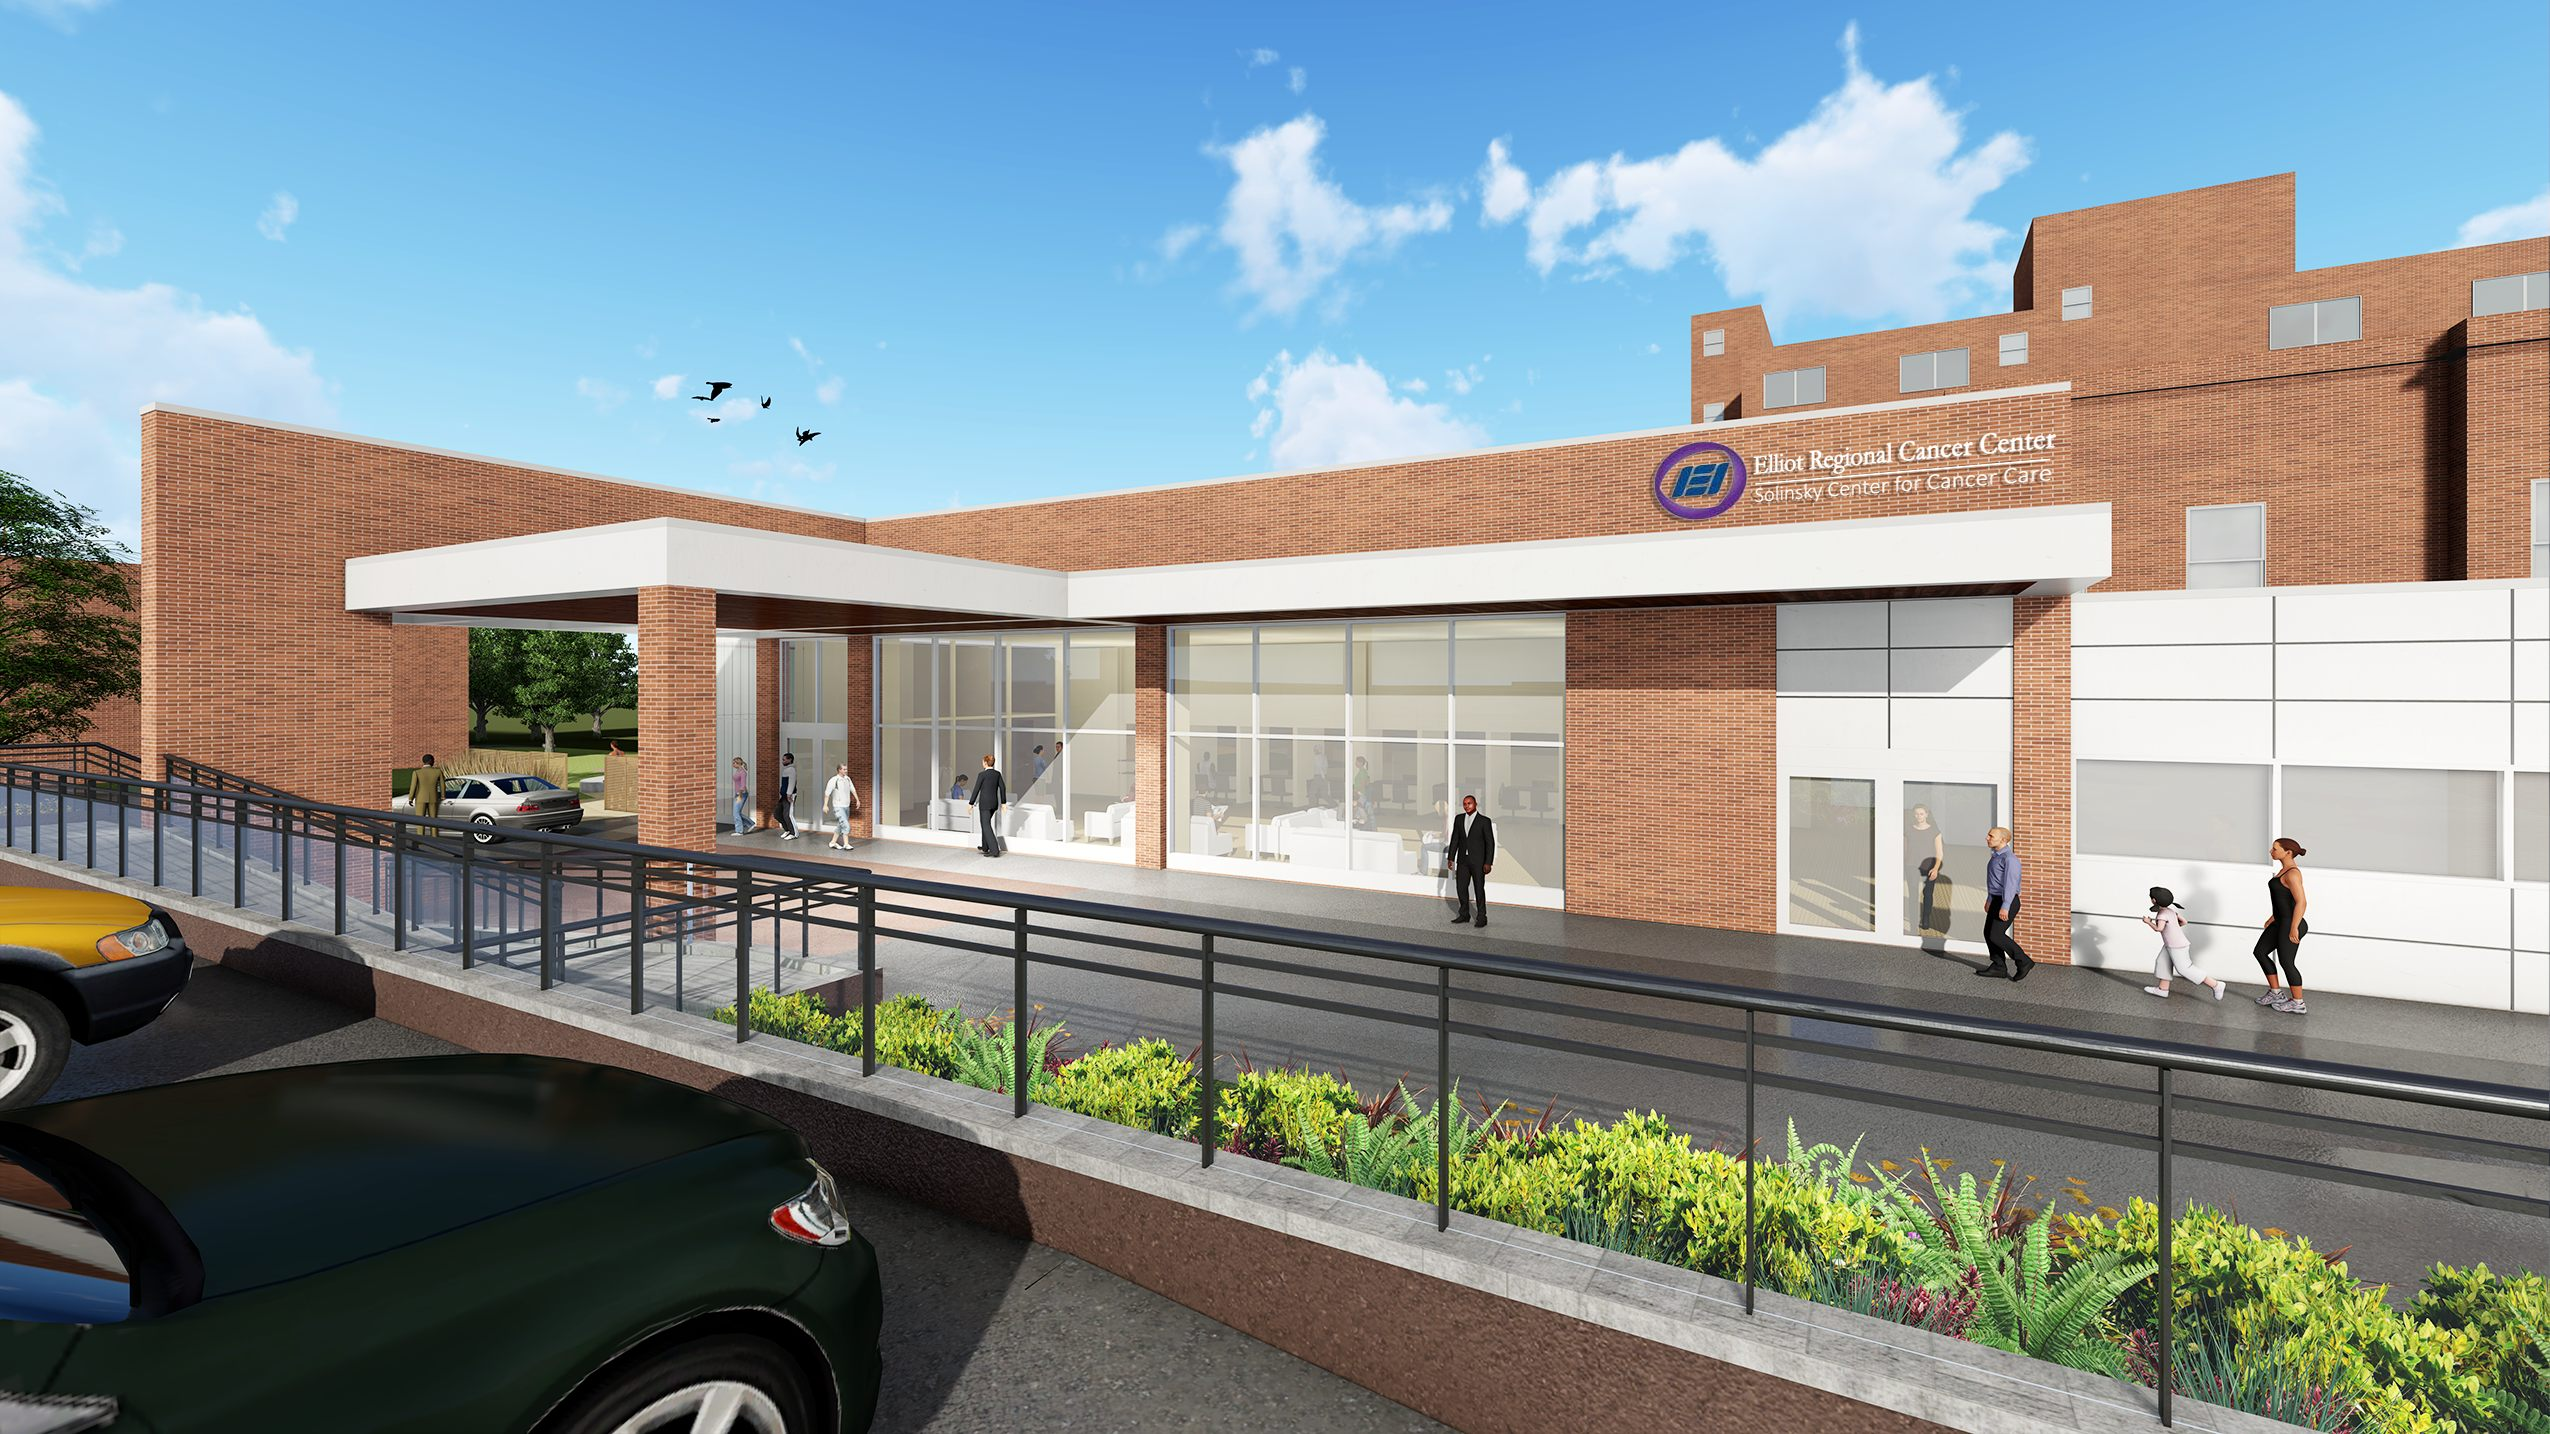 Elliot Cancer Center Receives Transformational Gift